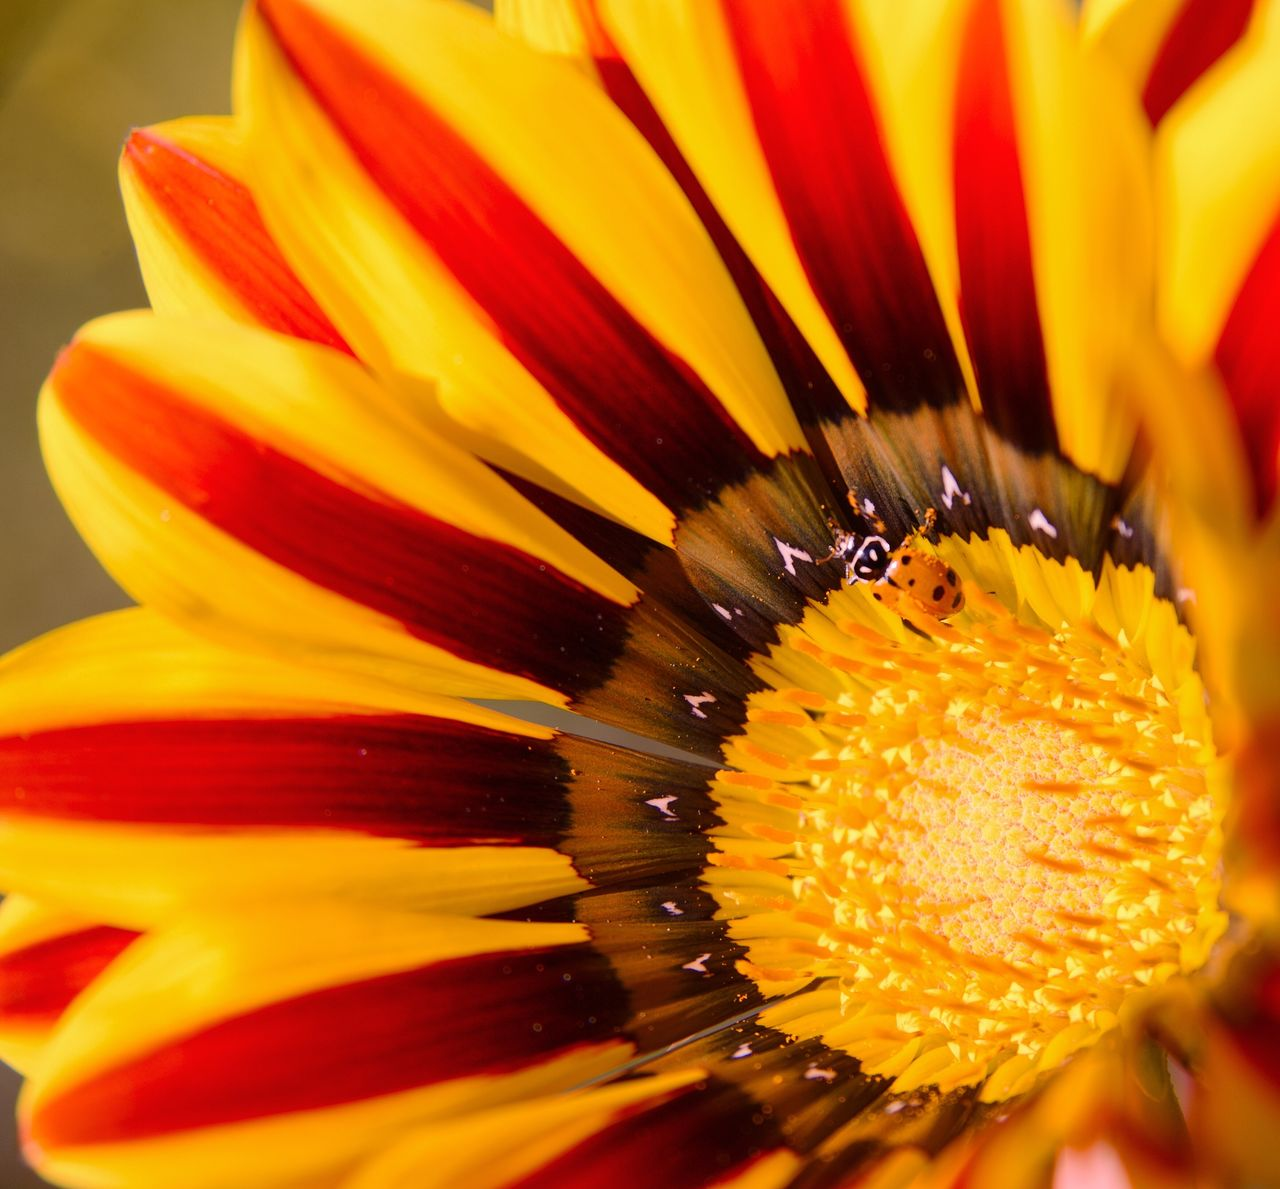 flower, petal, fragility, flower head, beauty in nature, yellow, freshness, pollen, close-up, nature, growth, no people, gazania, outdoors, day, blooming, animal themes, passion flower